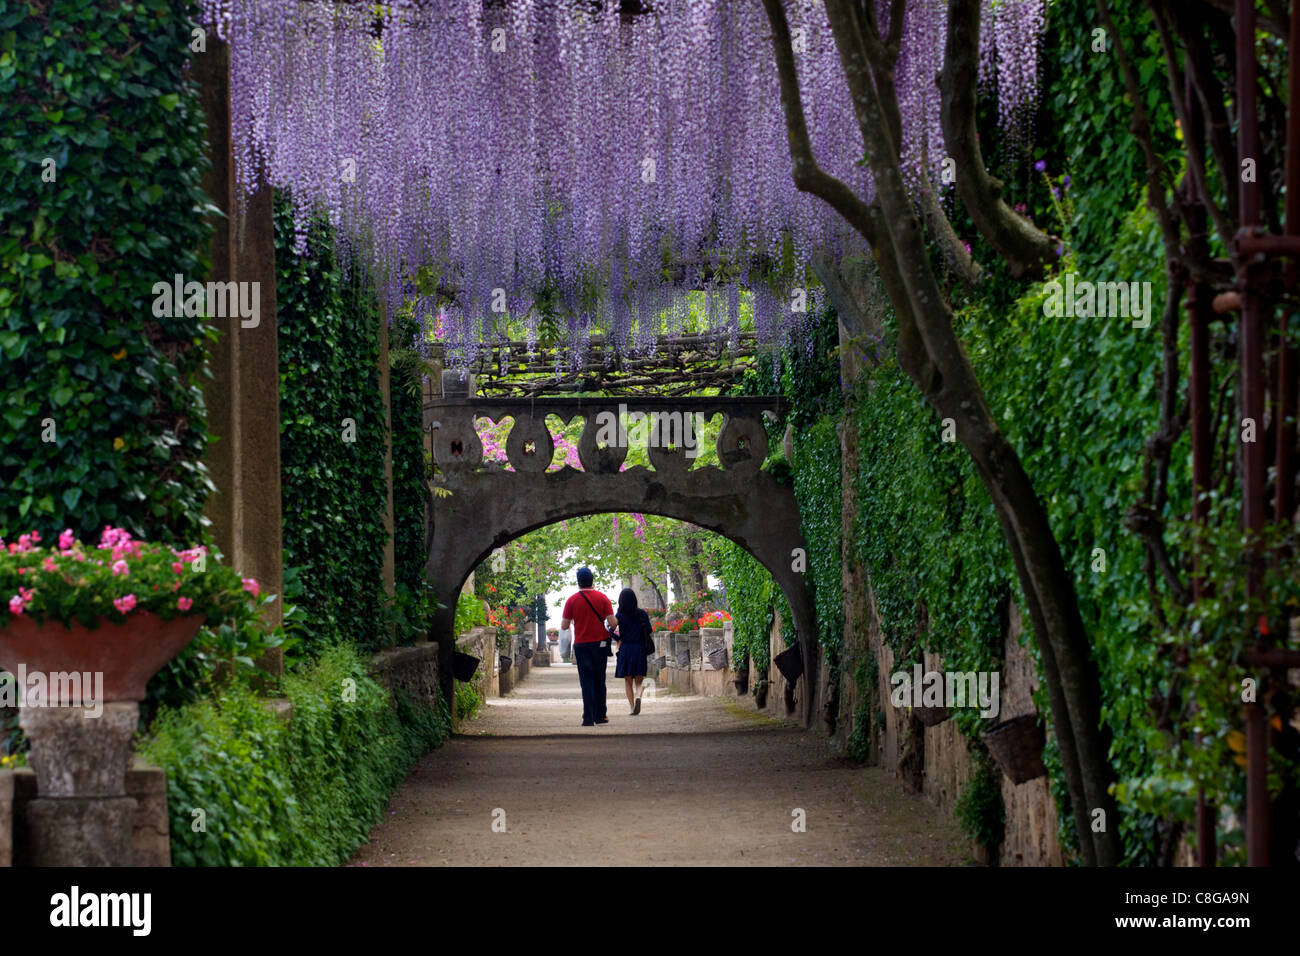 The Gardens Of The Villa Cimbrone In Ravello Amalfi Coast